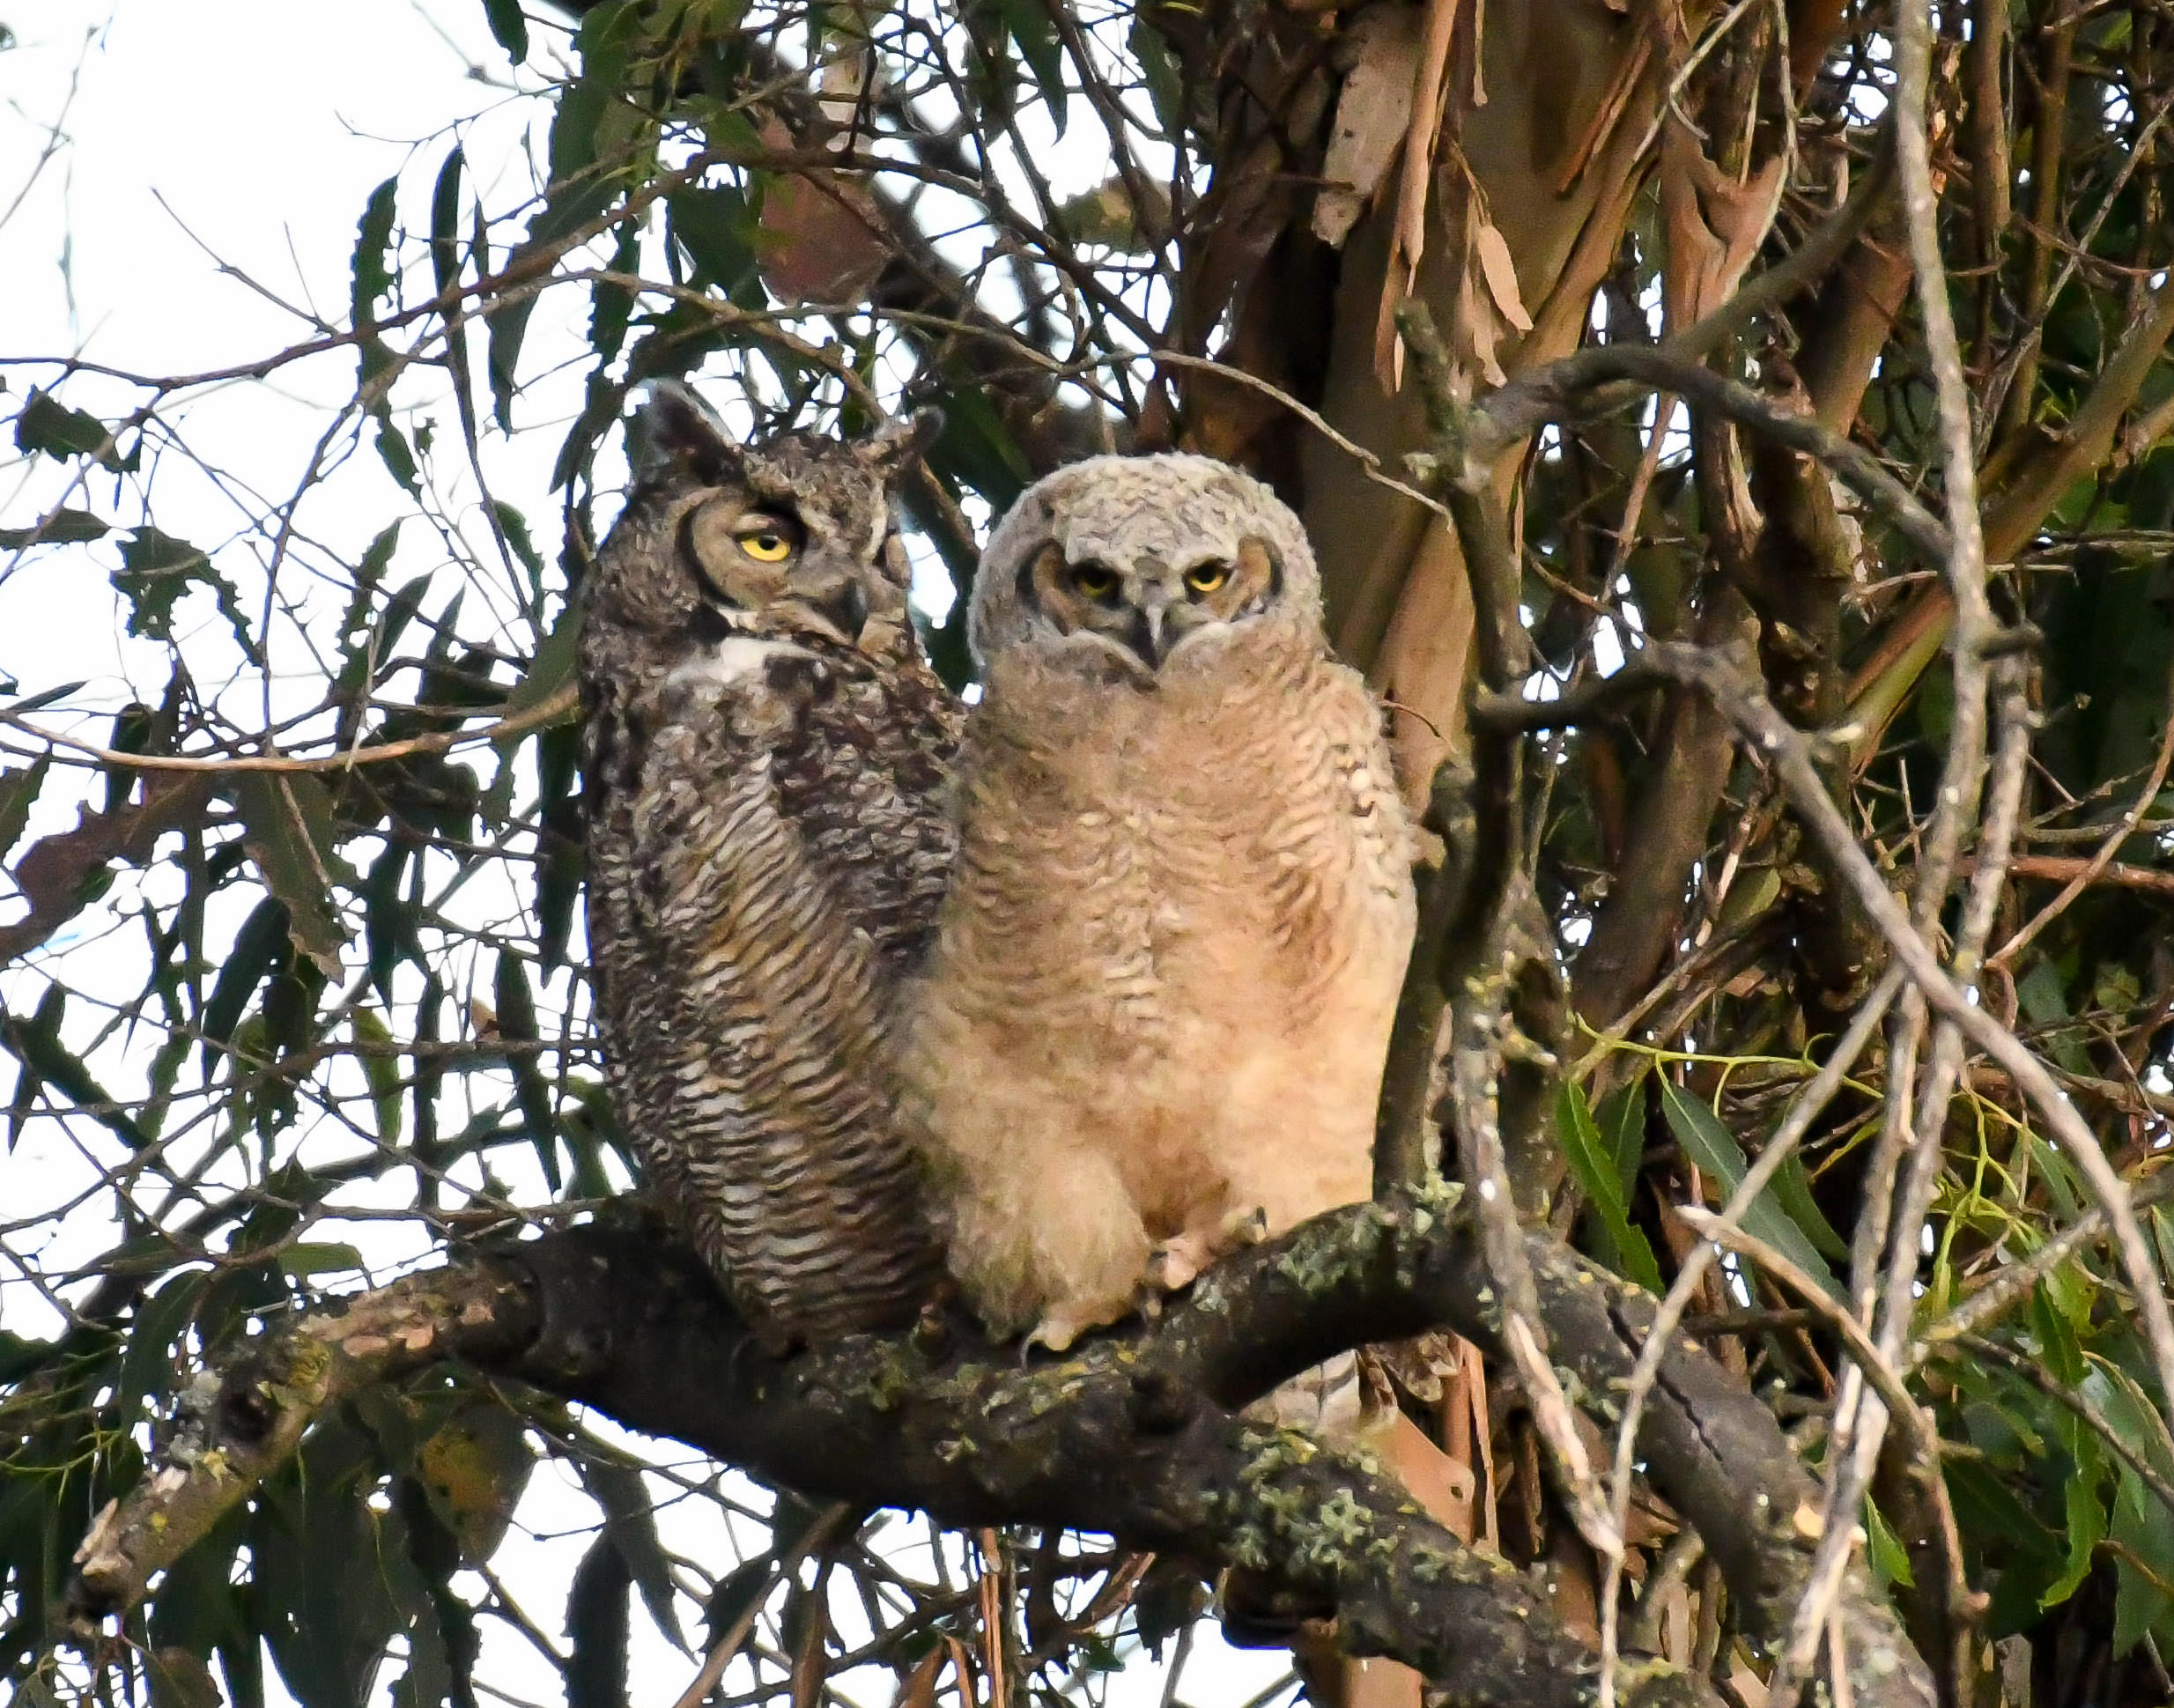 A great horned owl mother with her young fledgling perched on a branch of a eucalyptus tree